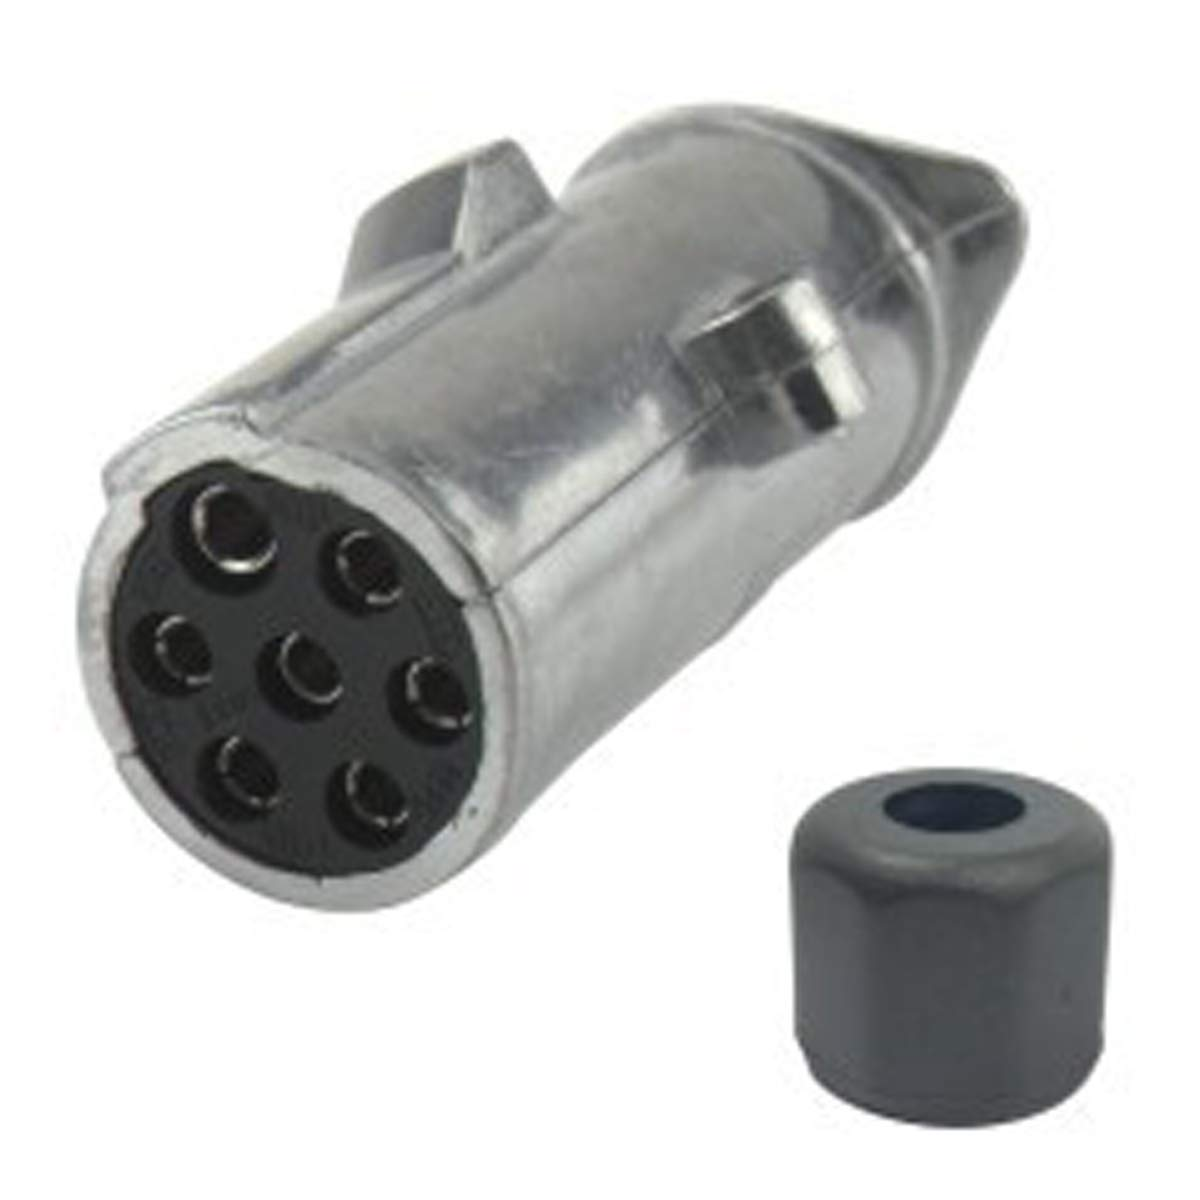 Autoly N Type 7 Way Trailer Plug for European Standard Car TM6004B